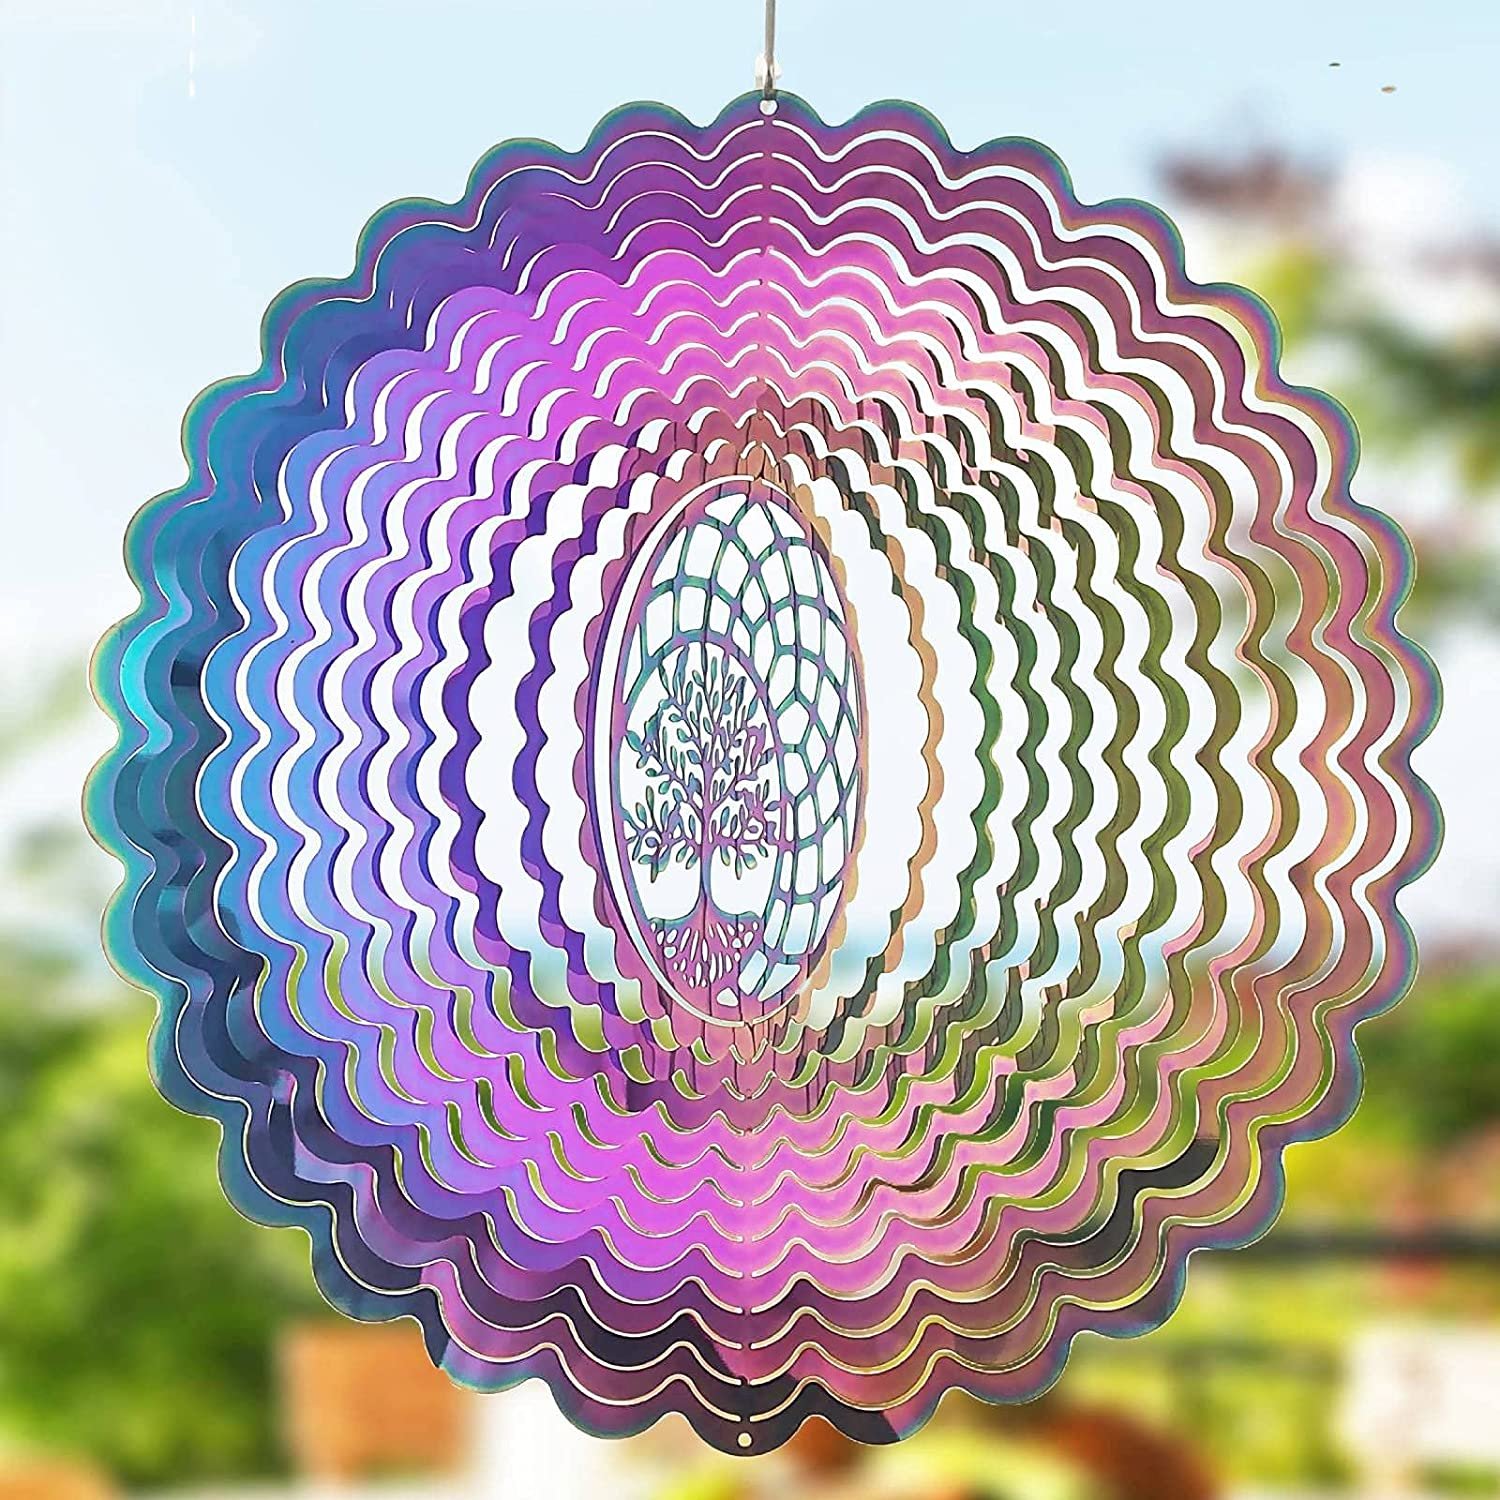 Wind Spinners-Hanging Wind Spinner for Yard and Garden,Kinetic 3D Metal Outdoor Garden Decor Wind Spinner,Yard Spinners Wind Catcher Chime Sculpture Art Decorations-Windspinner Tree of Life 10